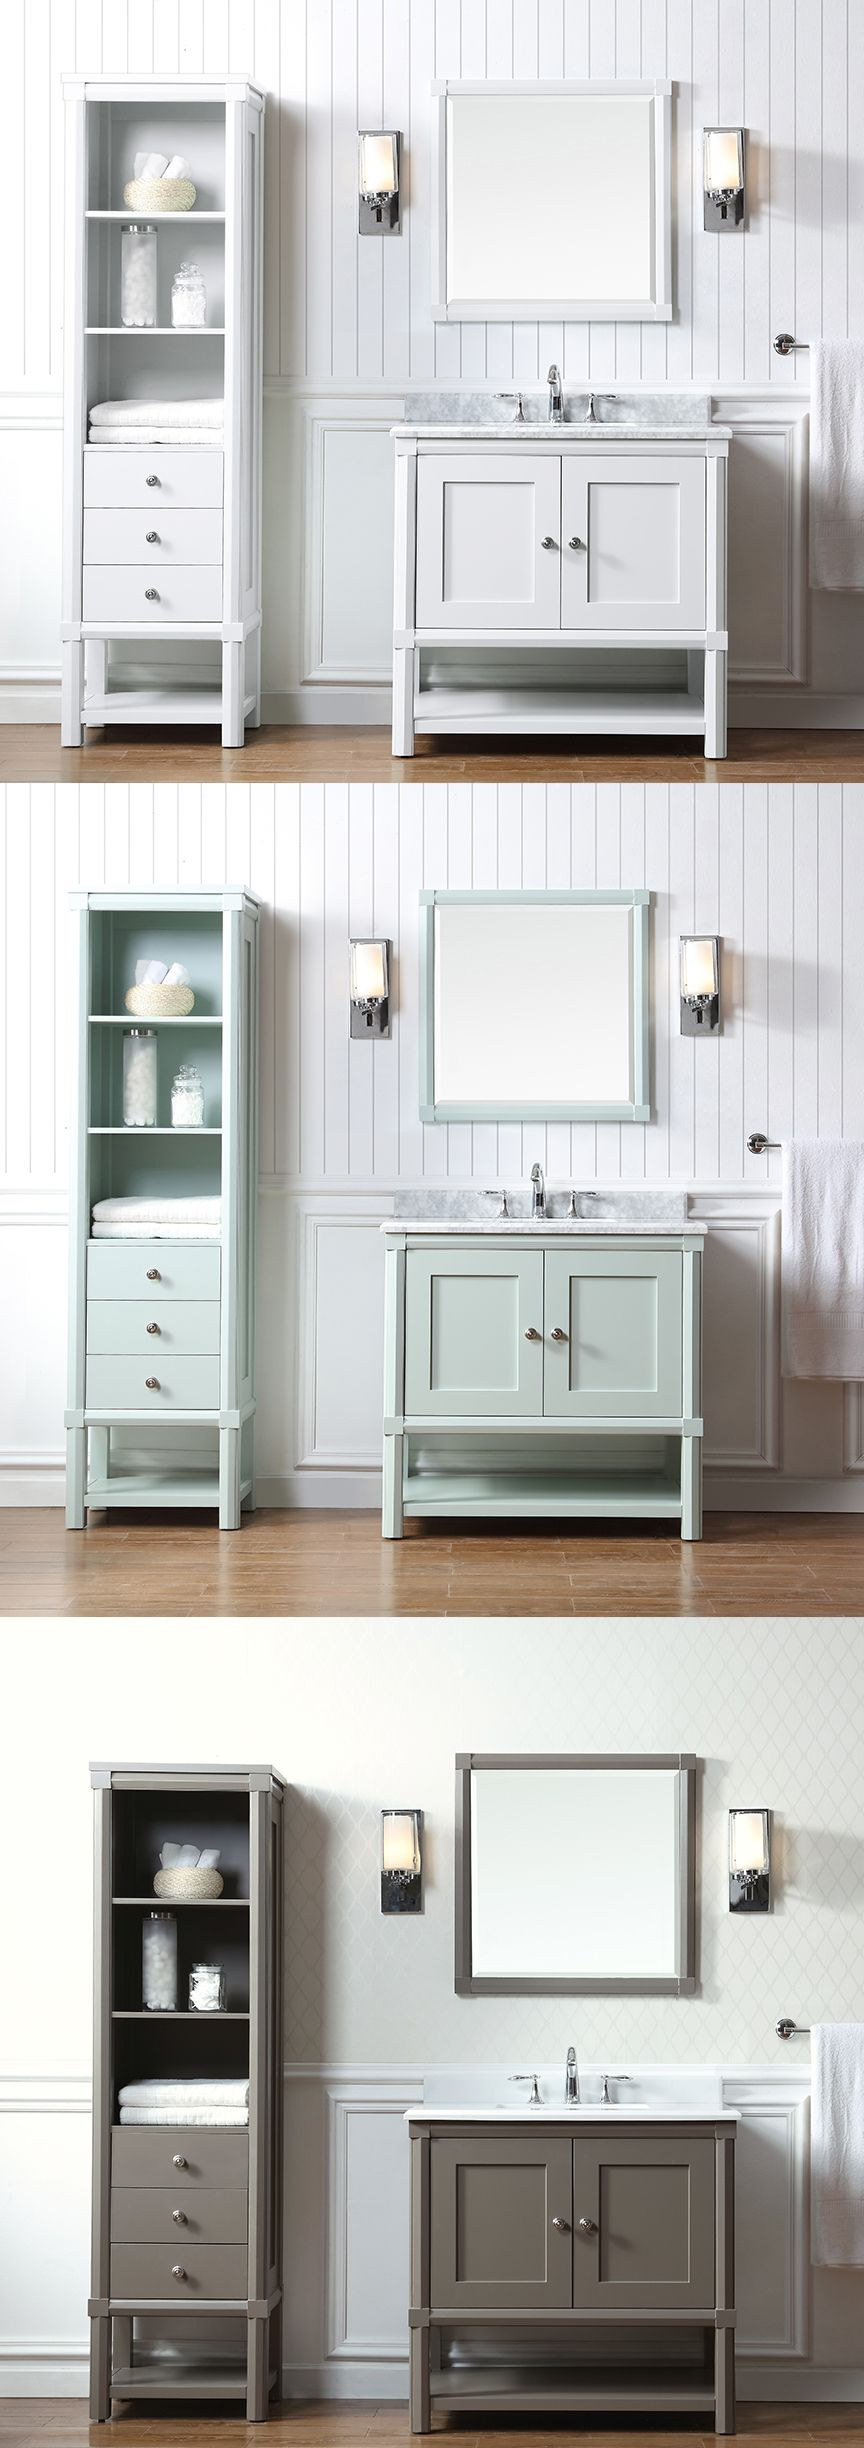 Gray bathroom vanities on pinterest view more bathrooms 187 bathroom - The Martha Stewart Living Sutton Bath Vanity Collection Only At Homedepot Comes In A Variety